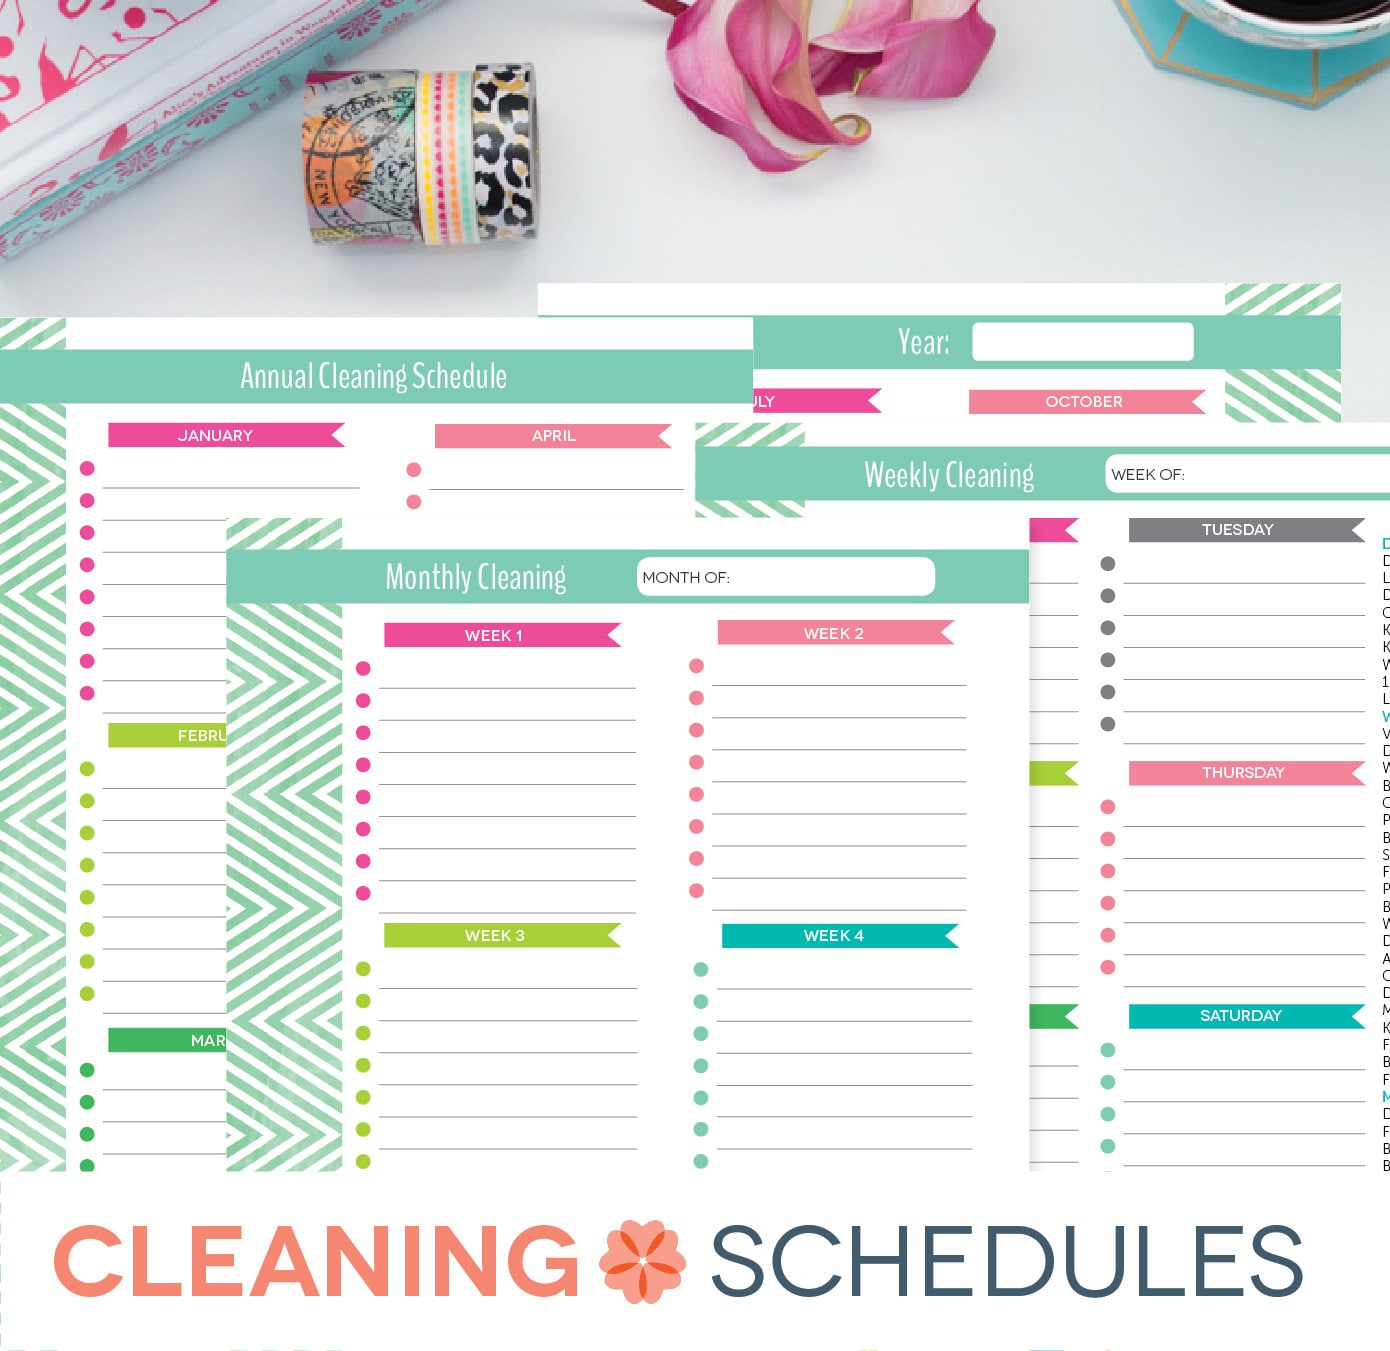 chore list daily weekly monthly yearly free weekly schedule templates